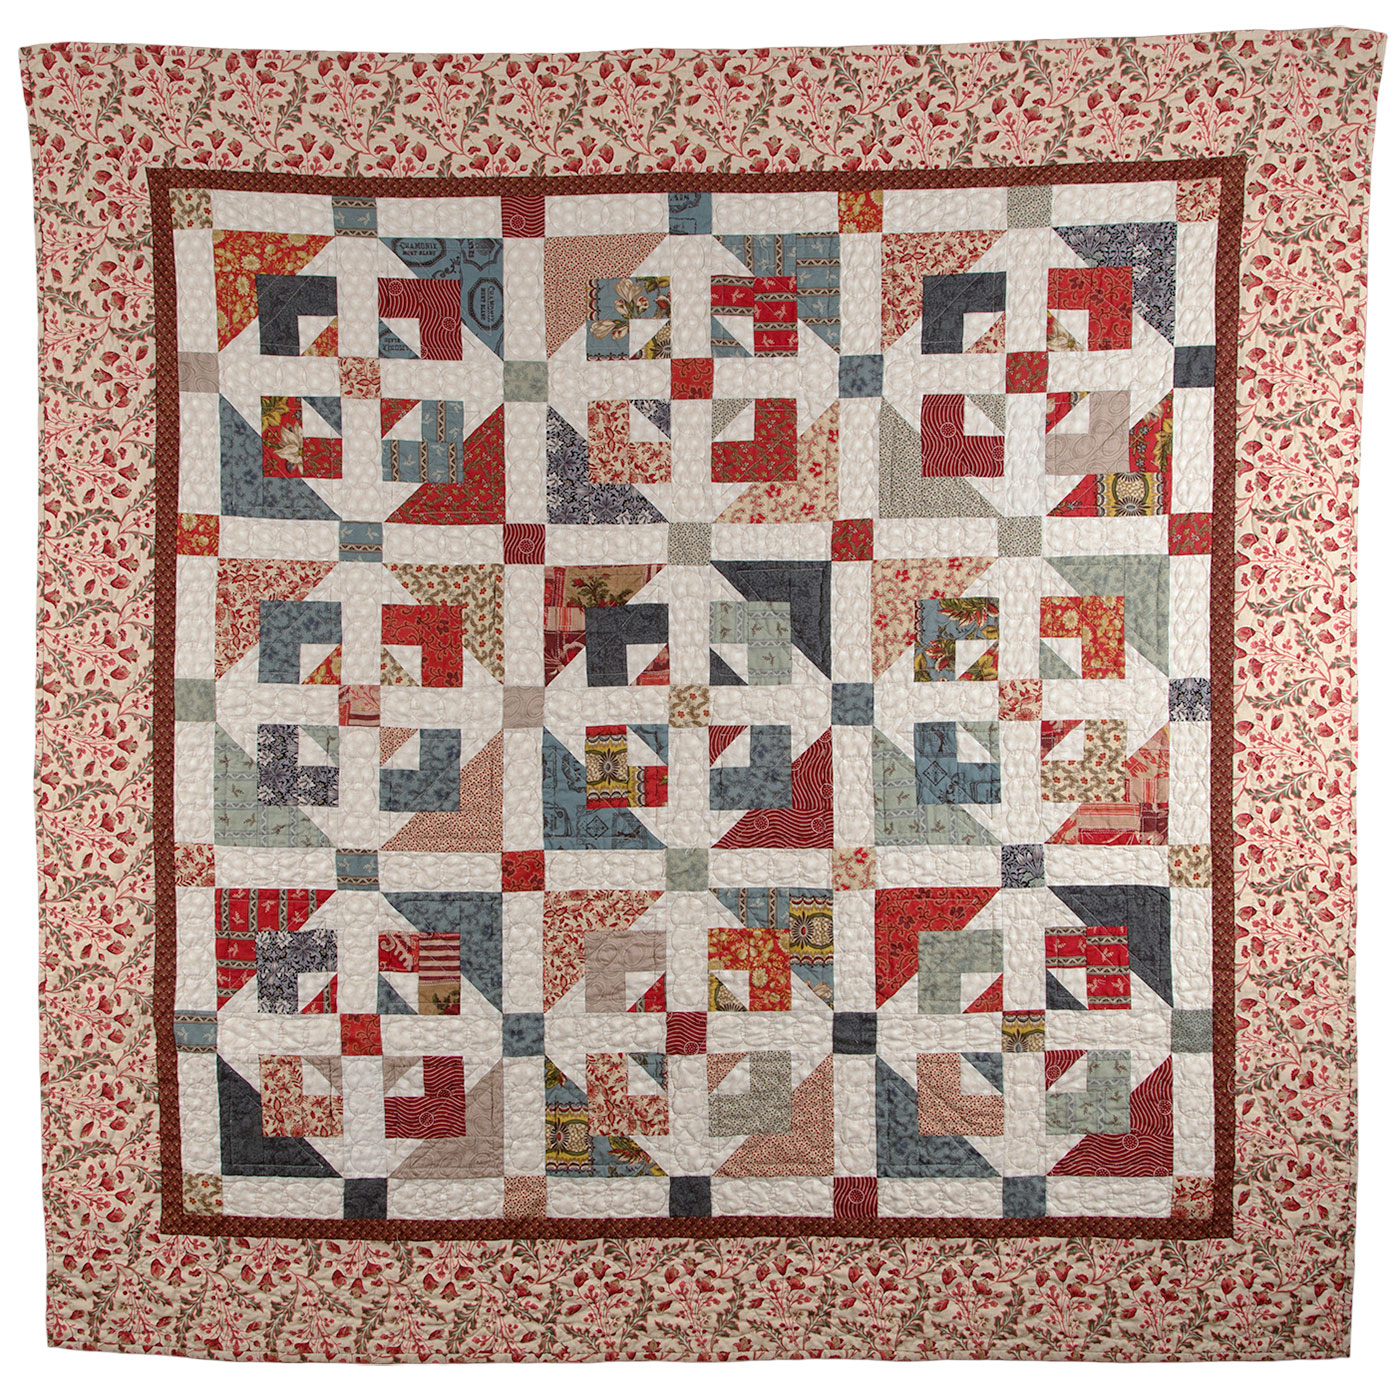 Episode 230: Everybody Quilt!